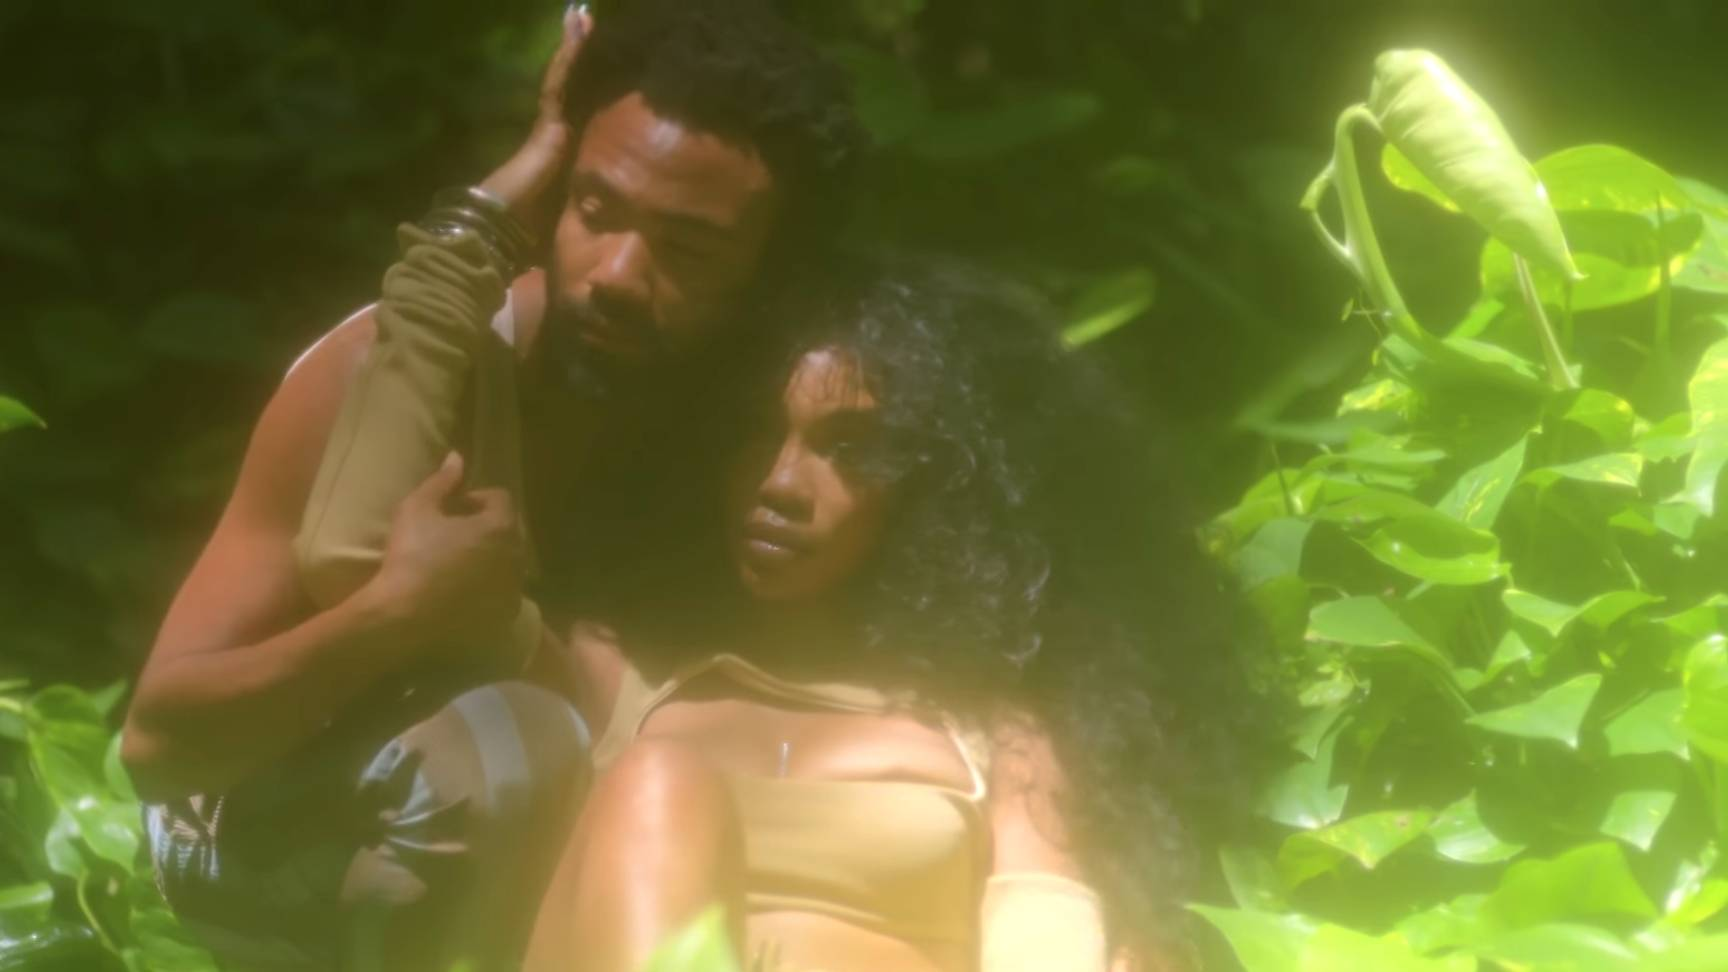 SZA and Donald Glover get hot and steamy in the #Garden video: https://t.co/8t7fj1Vb5J https://t.co/MlLSjJ2XGF